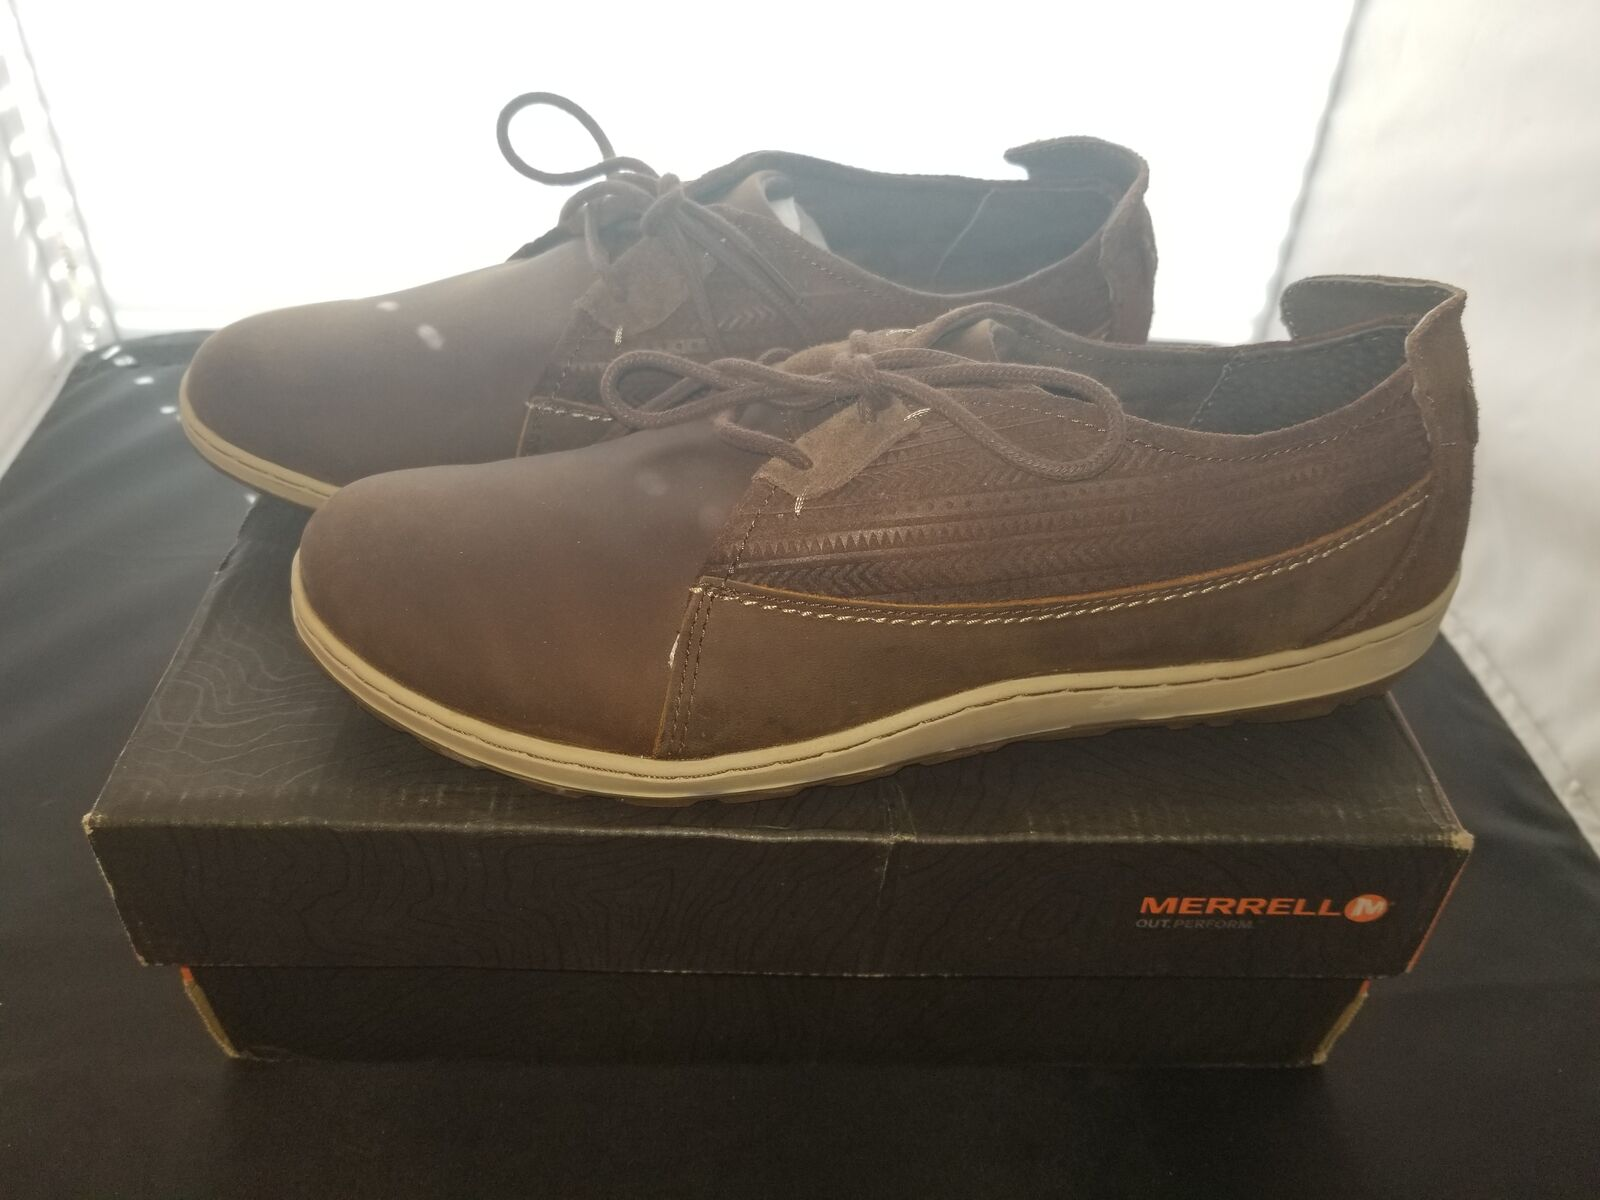 NIB Merrell Taglia 10.5 Medium Ashland Tie marrone Sugar Colorway Oxford Scarpe NEW